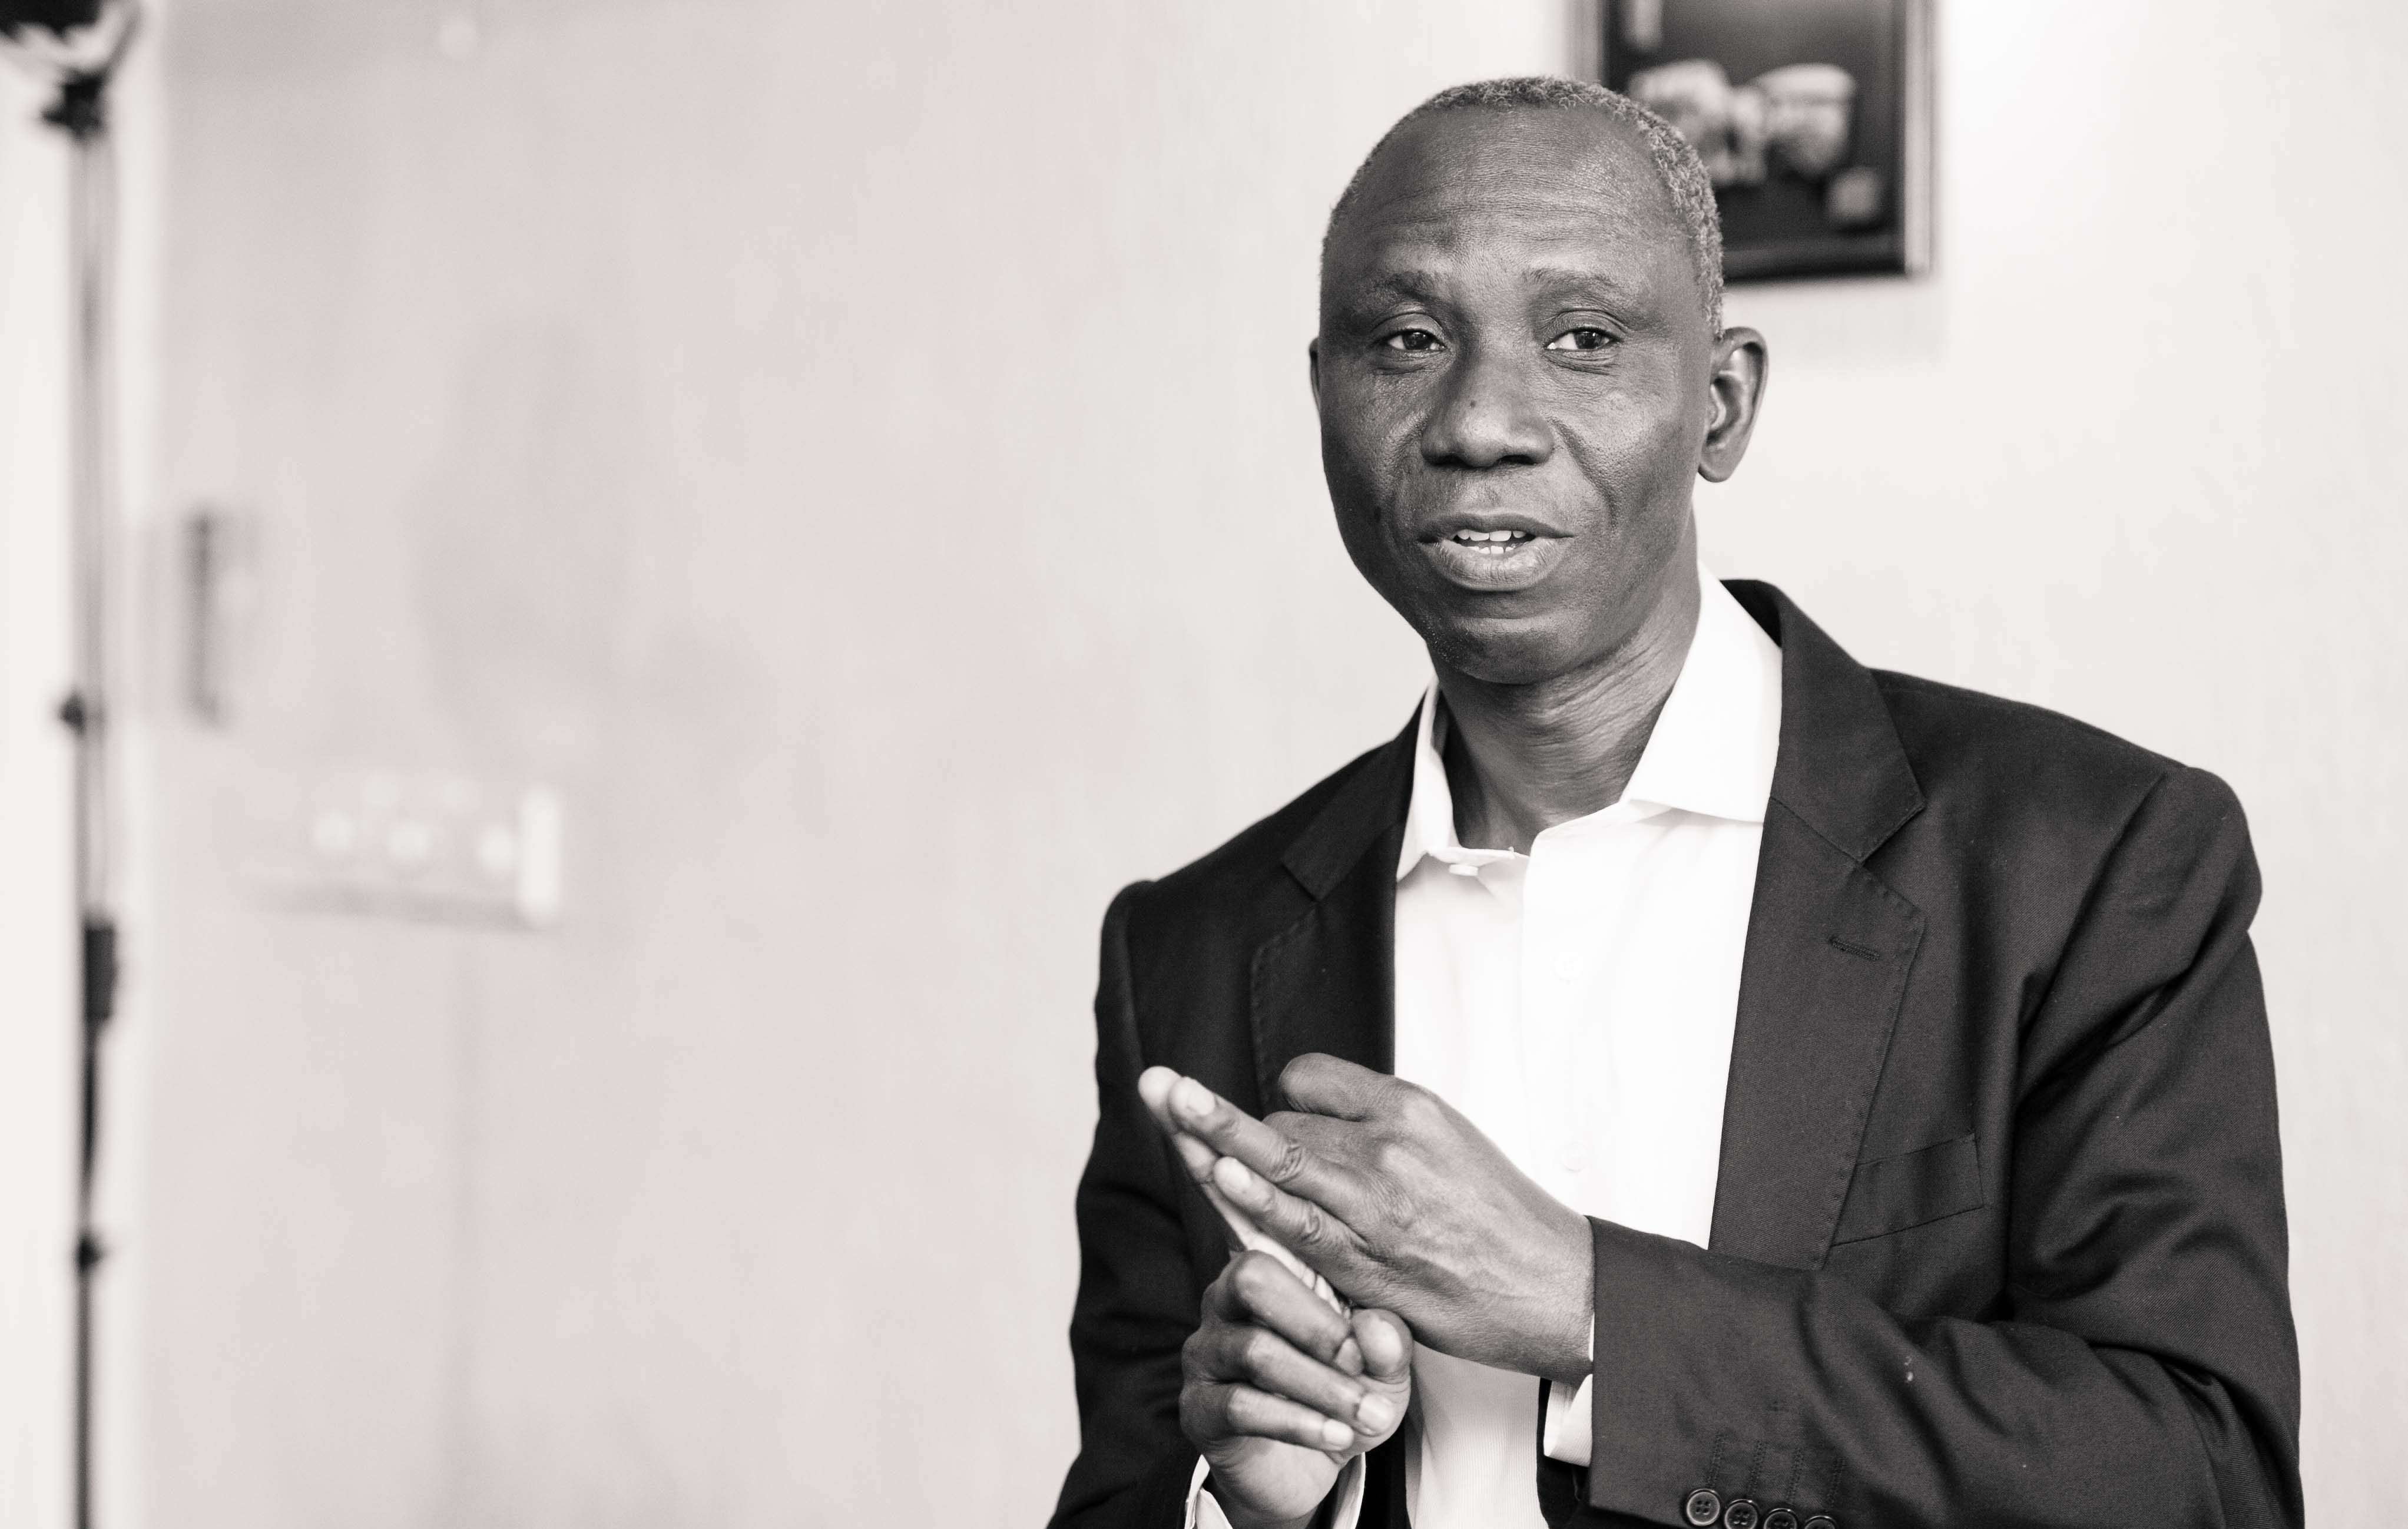 Don't Marry Without Seeing A Counselor - Ebo Whyte